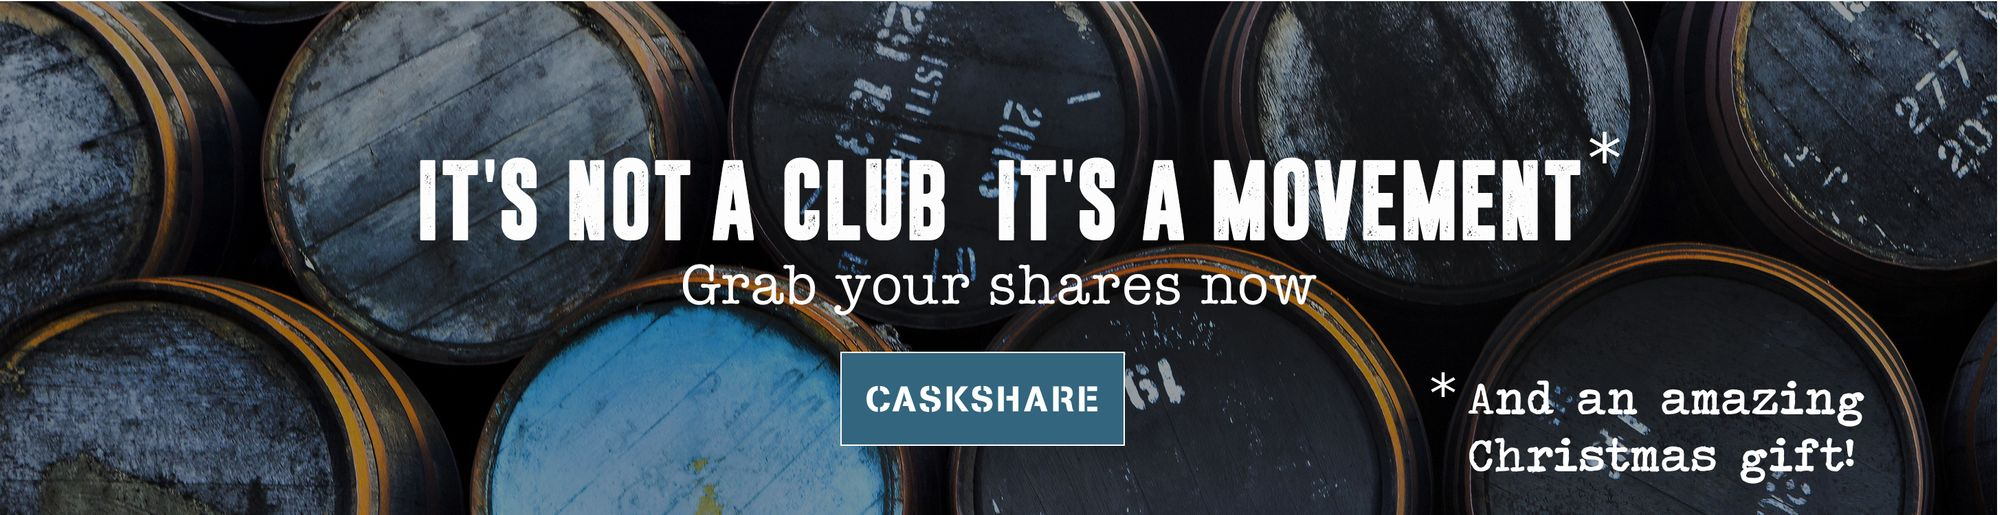 Caskshare as a Gift! Our 7 Step Guide for a One-of-a-Kind Whisky Gift